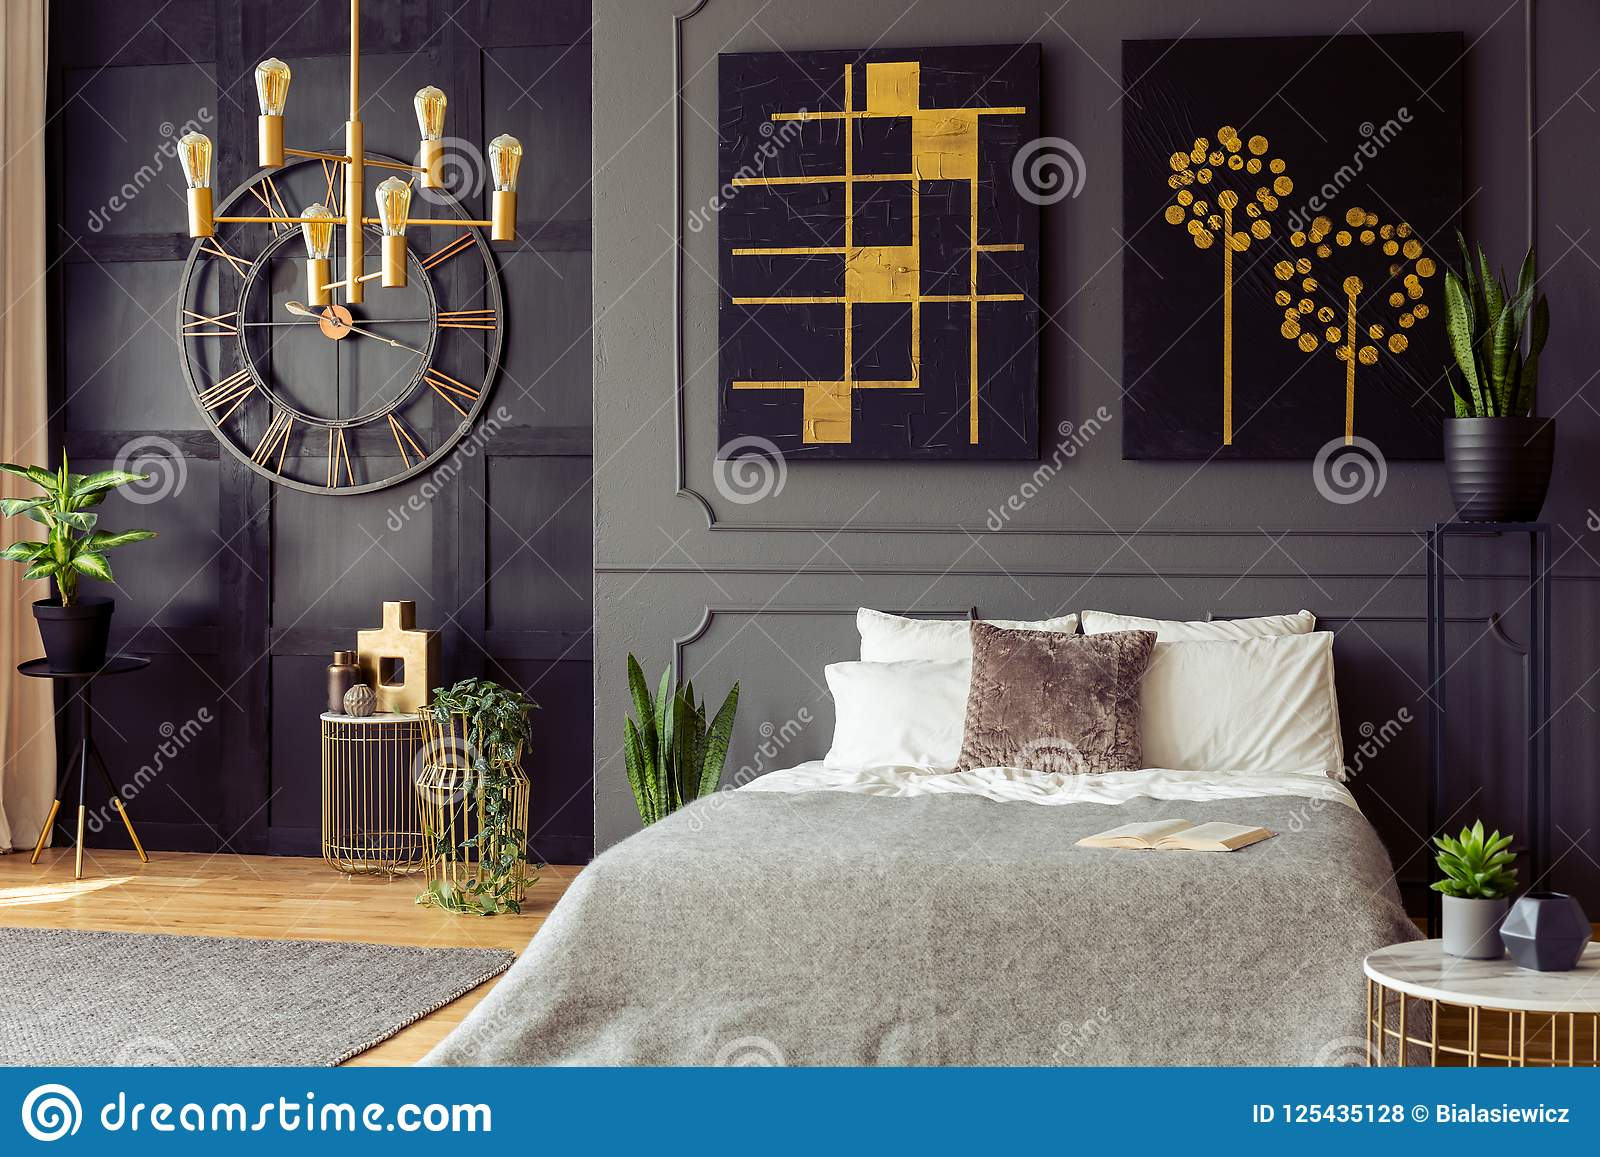 Plants And Black And Gold Posters In Grey Bedroom Interior With Clock And Bed With Pillows Real Photo Stock Photo Image Of Real Room 125435128